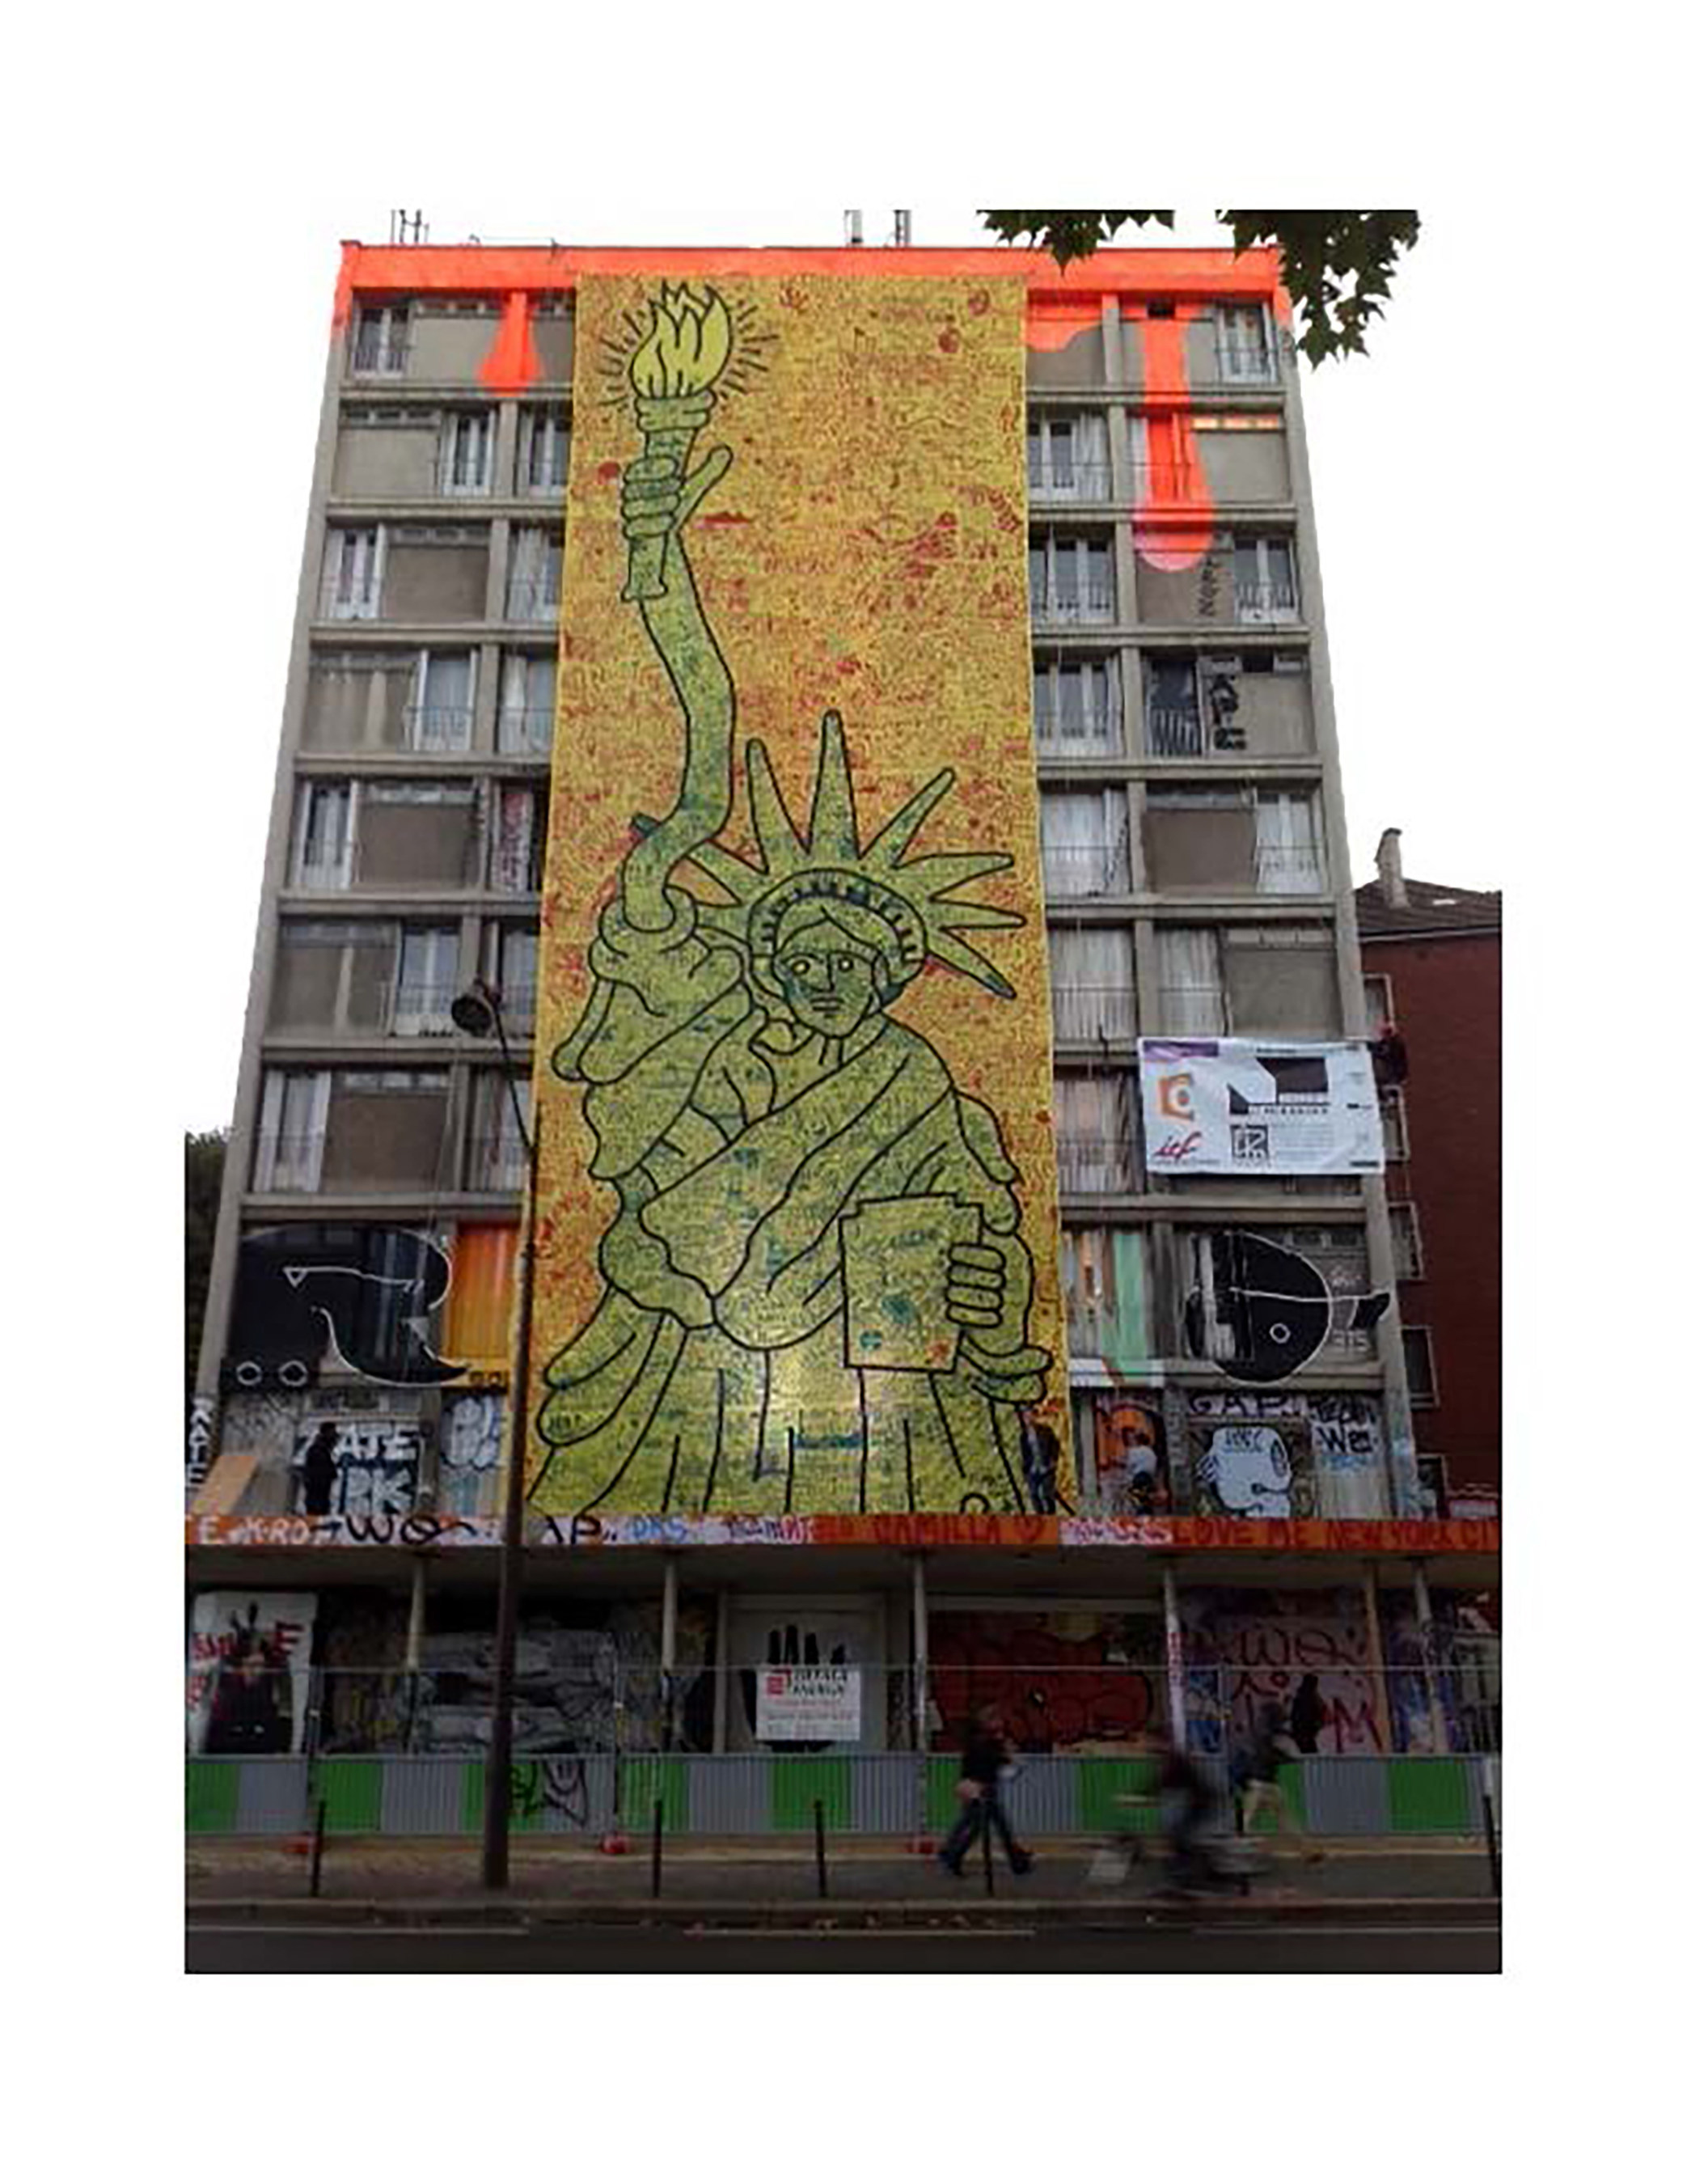 Keith Haring's Largest Art Piece Unveiled at NOMO SOHO Hotel Today